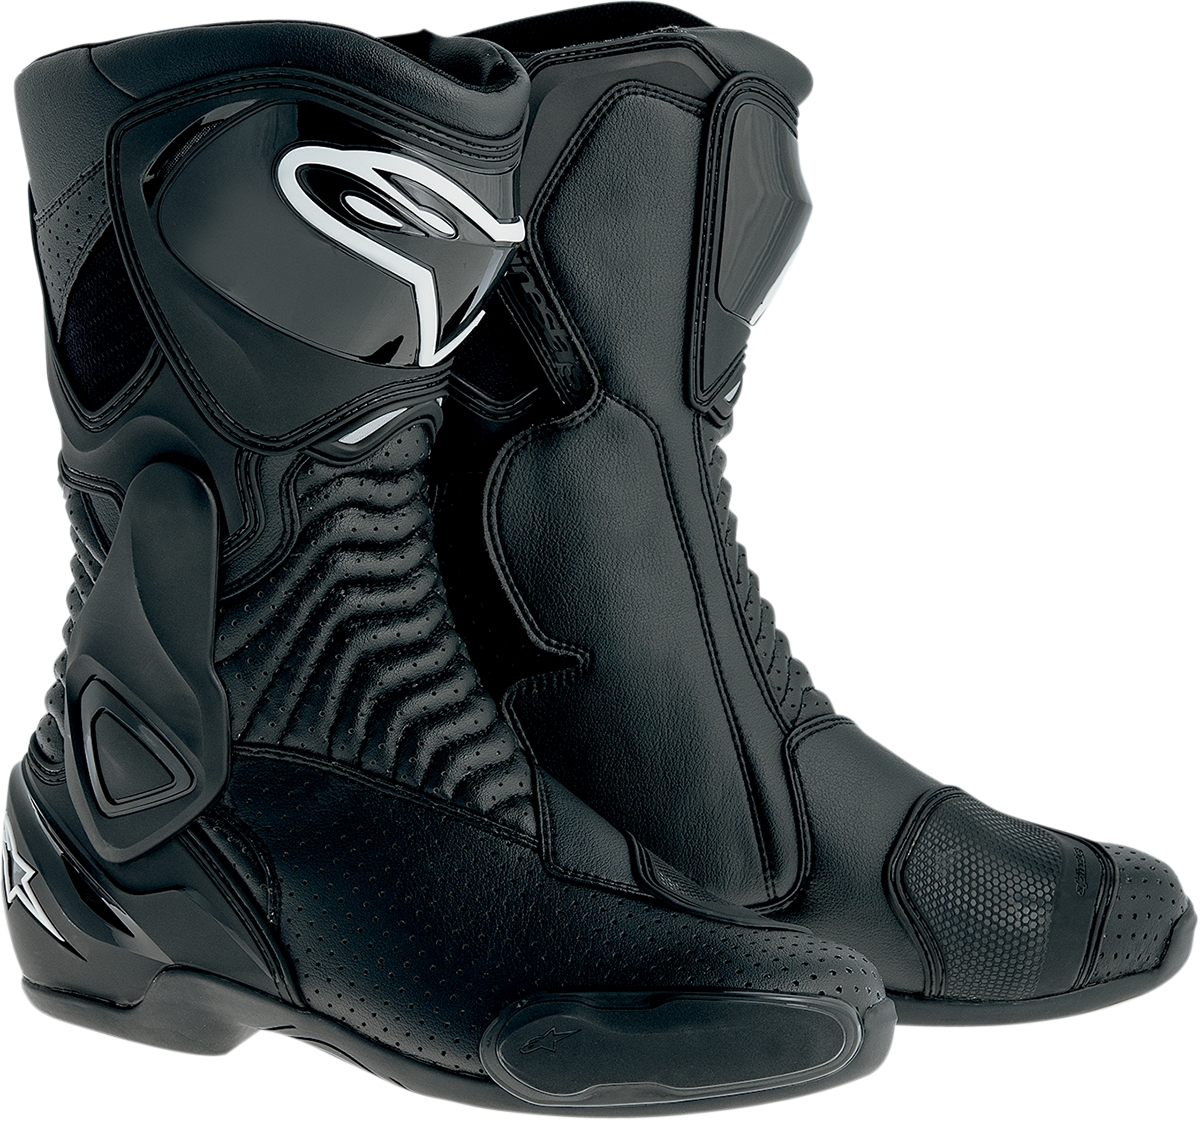 Alpinestars 14' SMX-6 Vented Boots